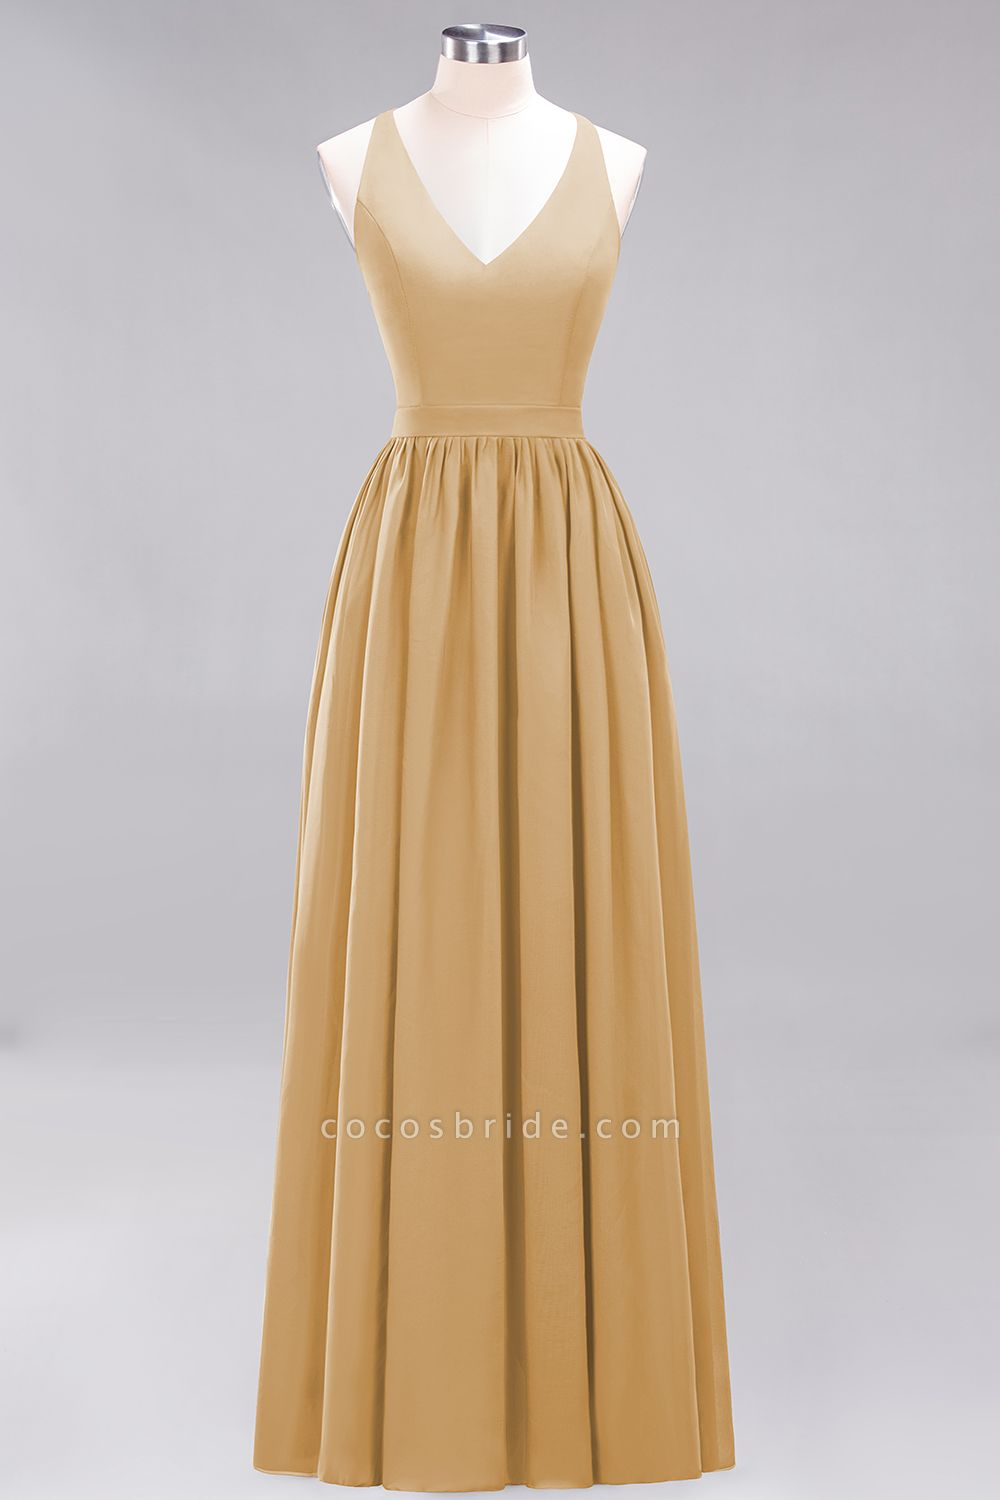 BM0152 Chiffon Lace V-Neck Sleeveless Straps Floor Length Bridesmaid Dress